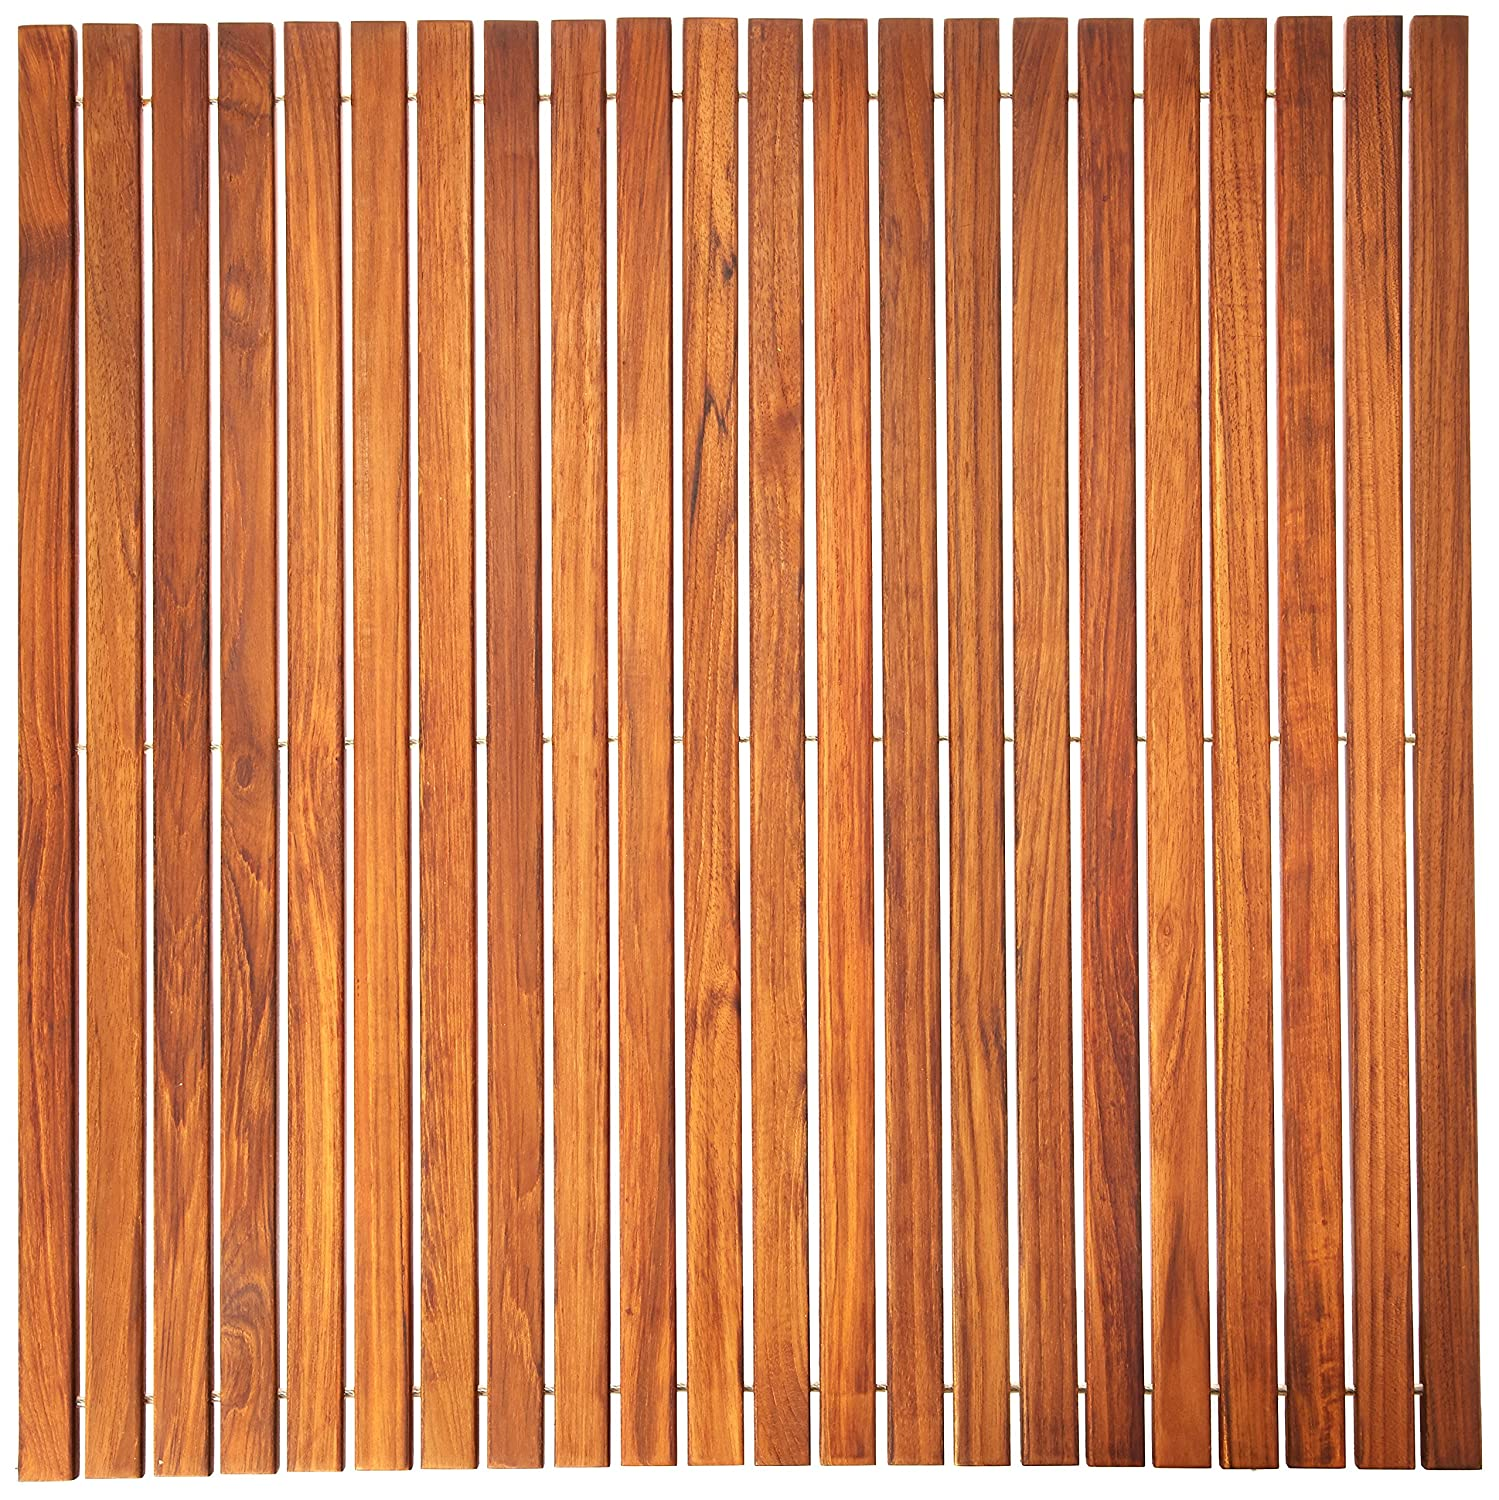 Bare Decor Fuji String Spa Shower Mat in Solid Teak Wood Oiled Finish. XL Square 30-Inchx30-Inch BARE-WF2134